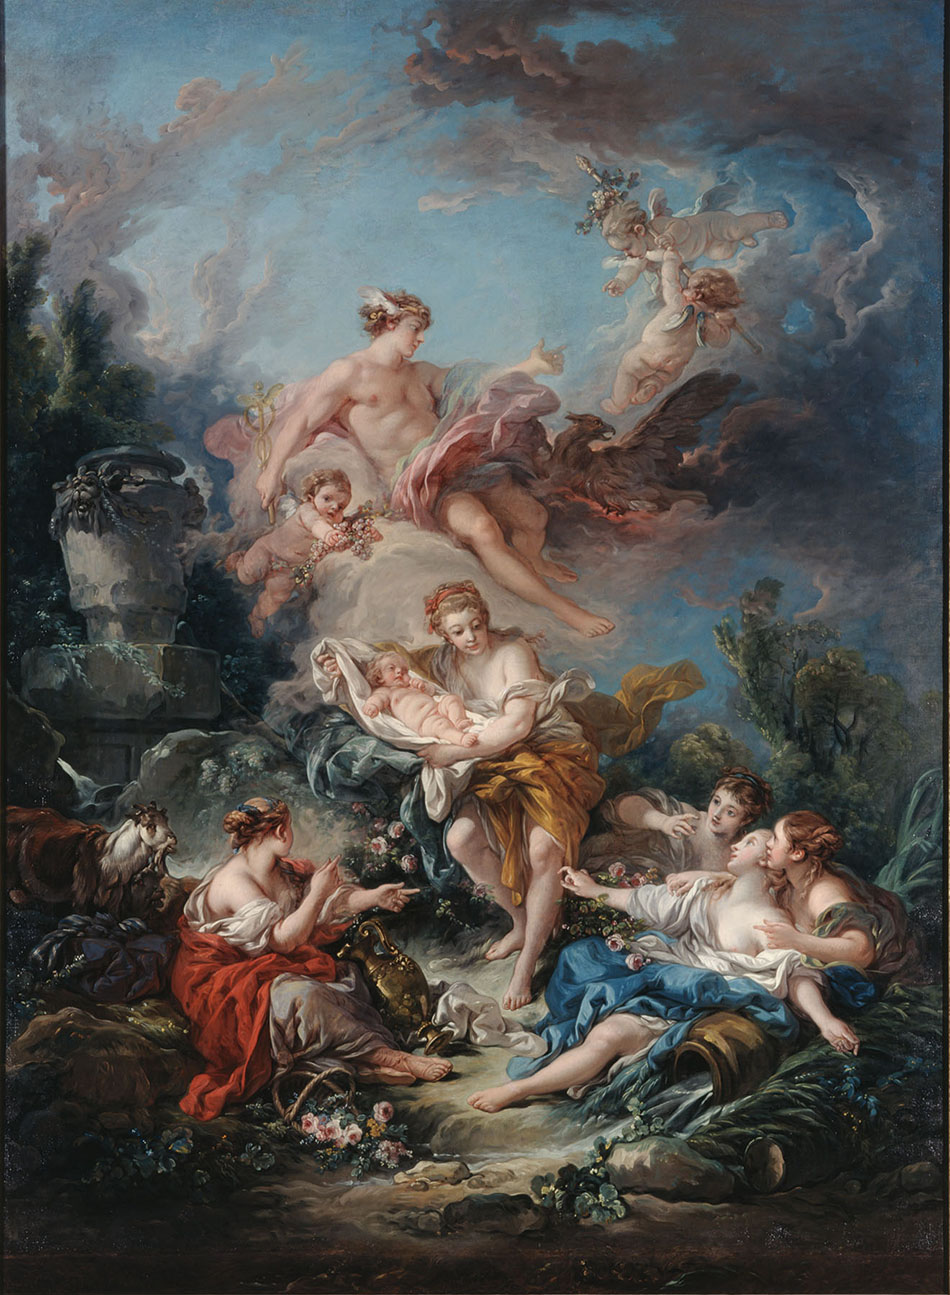 boucher_mercury confiding in the infant bacchus_w